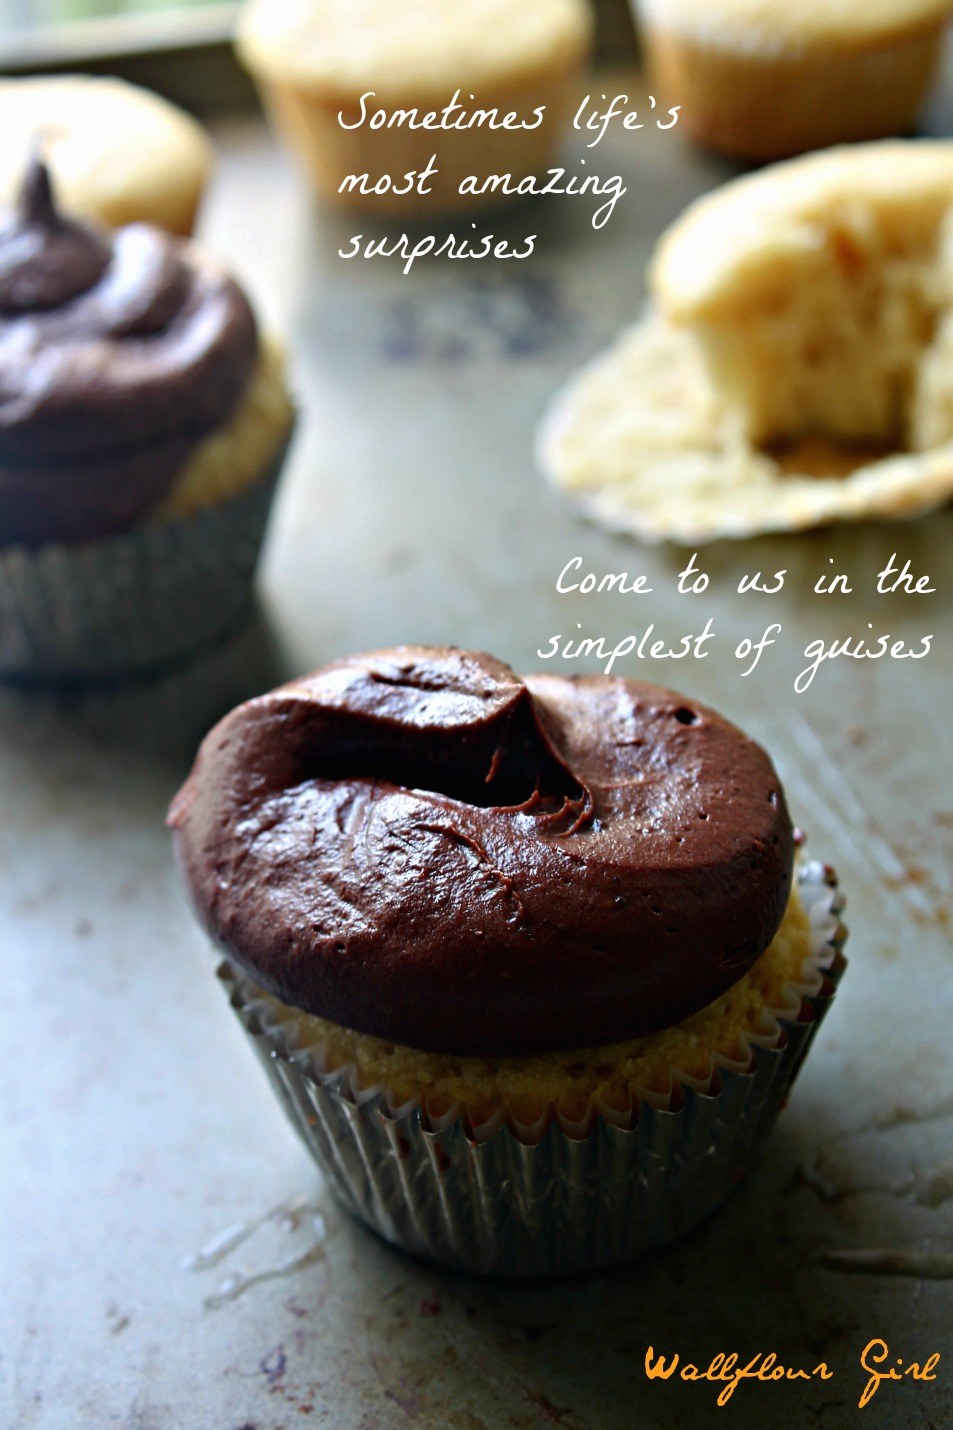 Vanilla Cupcakes with Chocolate Buttercream Frosting 21--061414